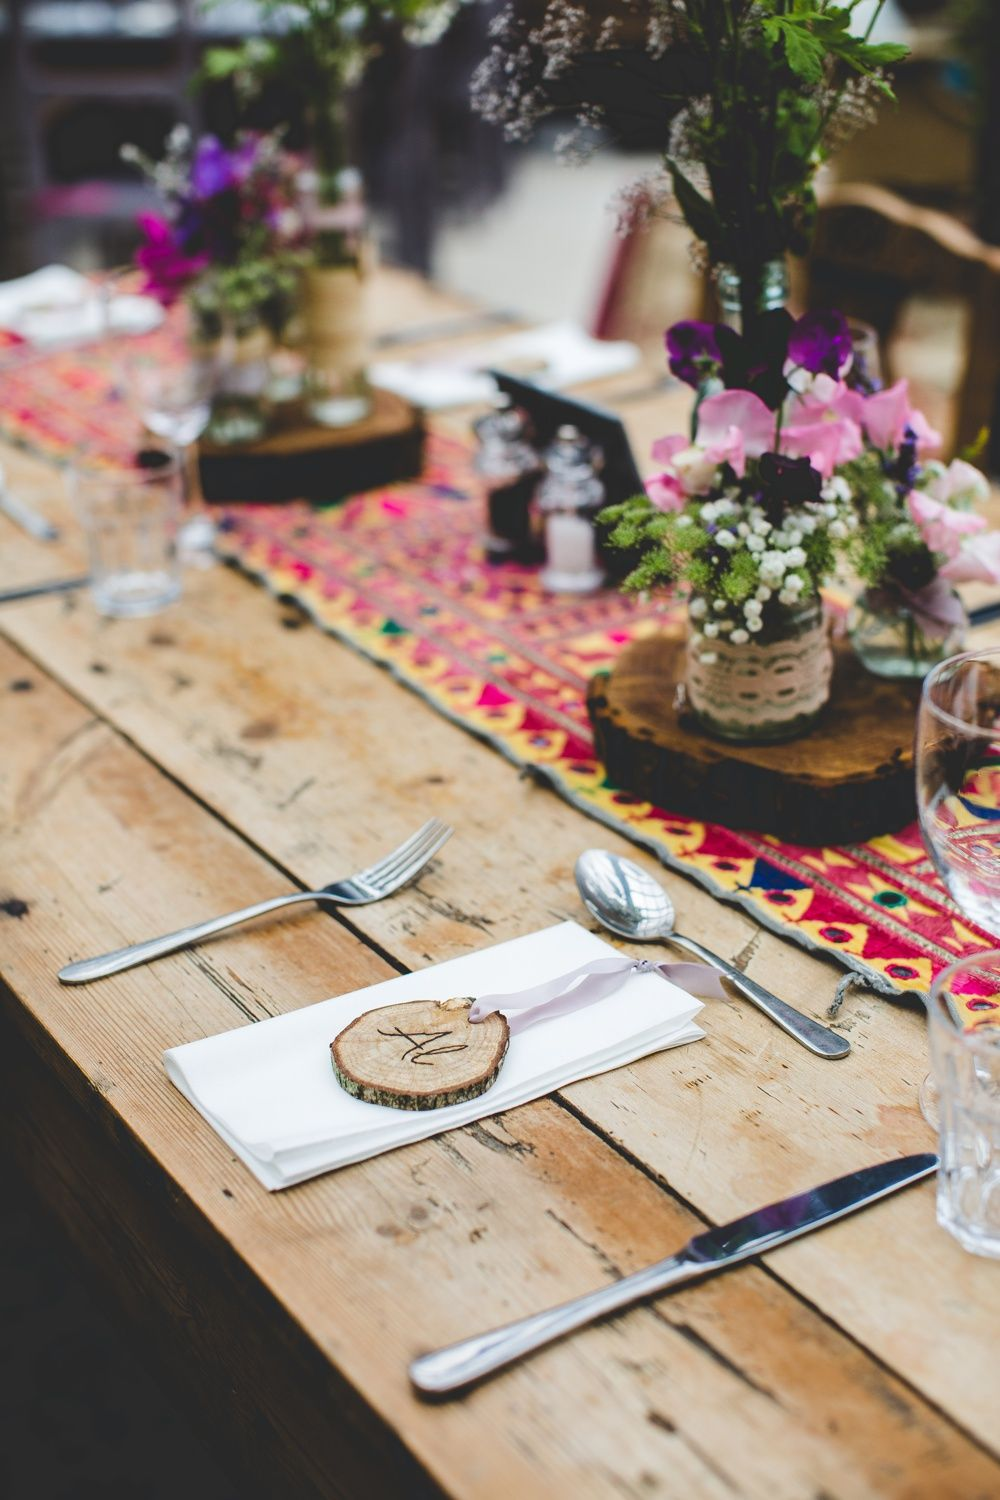 Festival Inspired DIY Wedding With Relaxed Dress Code is part of garden Seating Hay Bales - Festival Inspired DIY Wedding With Relaxed Dress Code Hay Bale Seating For Ceremony And Garden Games With Images From Livvy Hukins Photography